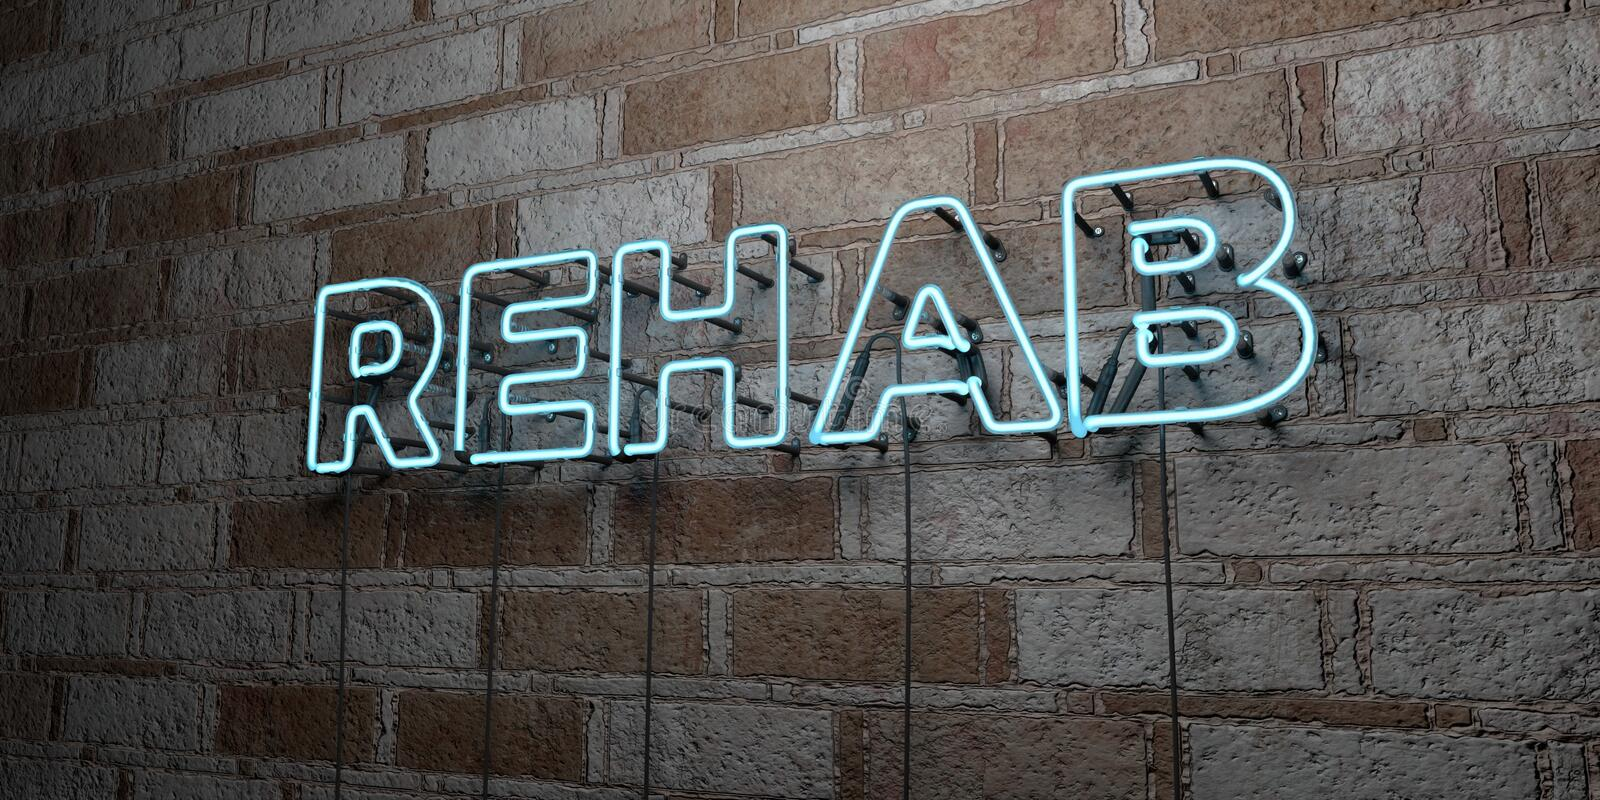 REHAB - Glowing Neon Sign on stonework wall - 3D rendered royalty free stock illustration. Can be used for online banner ads and direct mailers vector illustration